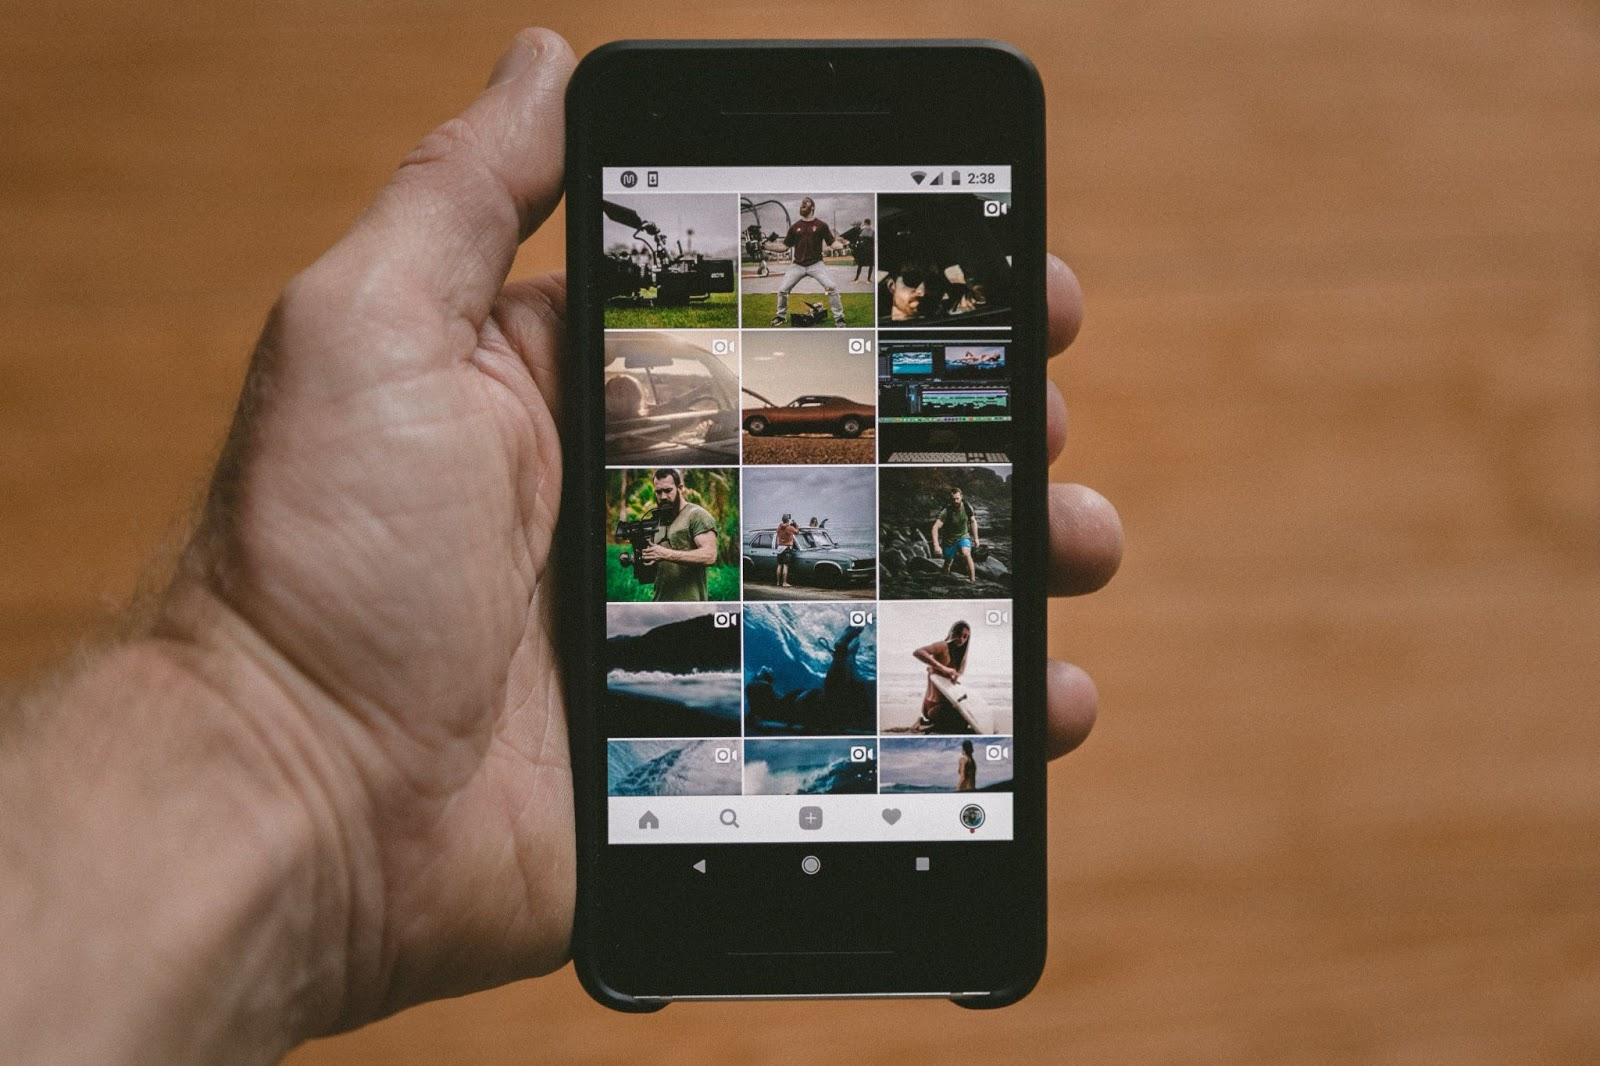 Engage instagram followers with variety of content